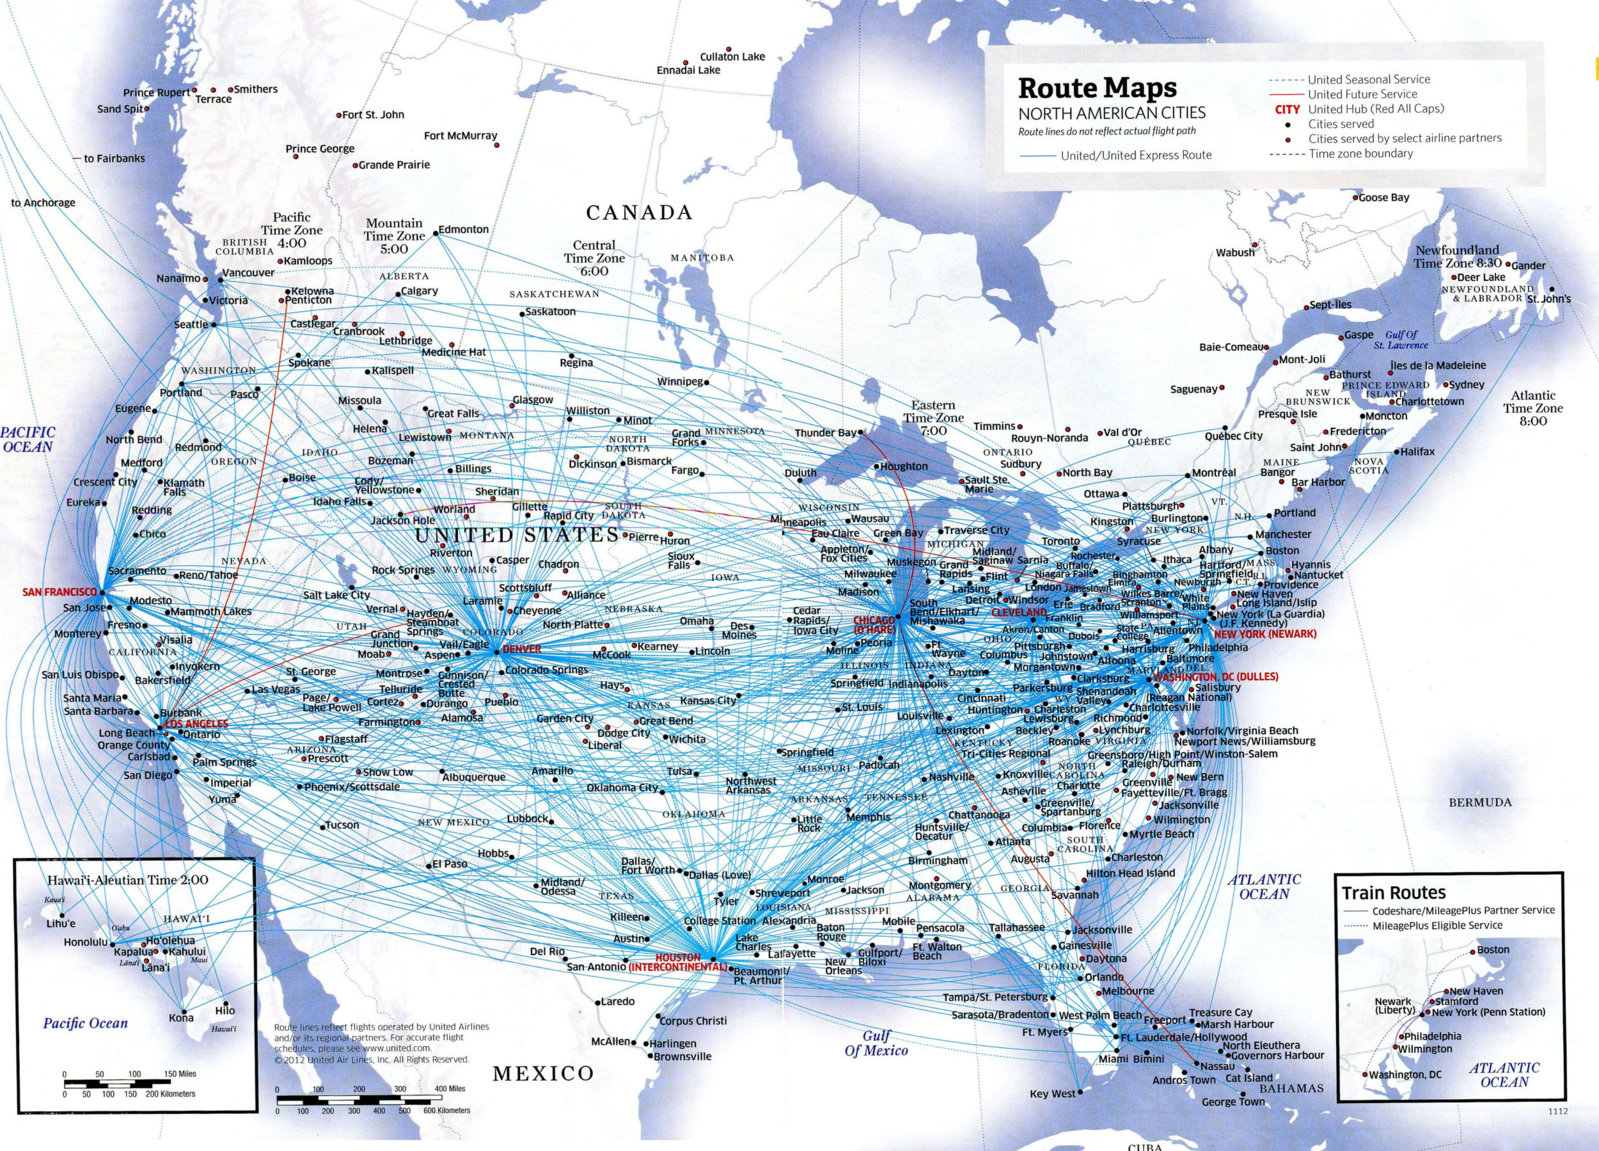 United Airlines, 1966 route map - video | Metabunk on internet map, air europa map, delta air lines map, air austral map, construction map, financial map, marketing map, travel map, ireland location in world map, icelandair map, airport map, belavia map, flight map, national map, american eagle map, callsign map, airfare map, volaris map, student map, first air map,